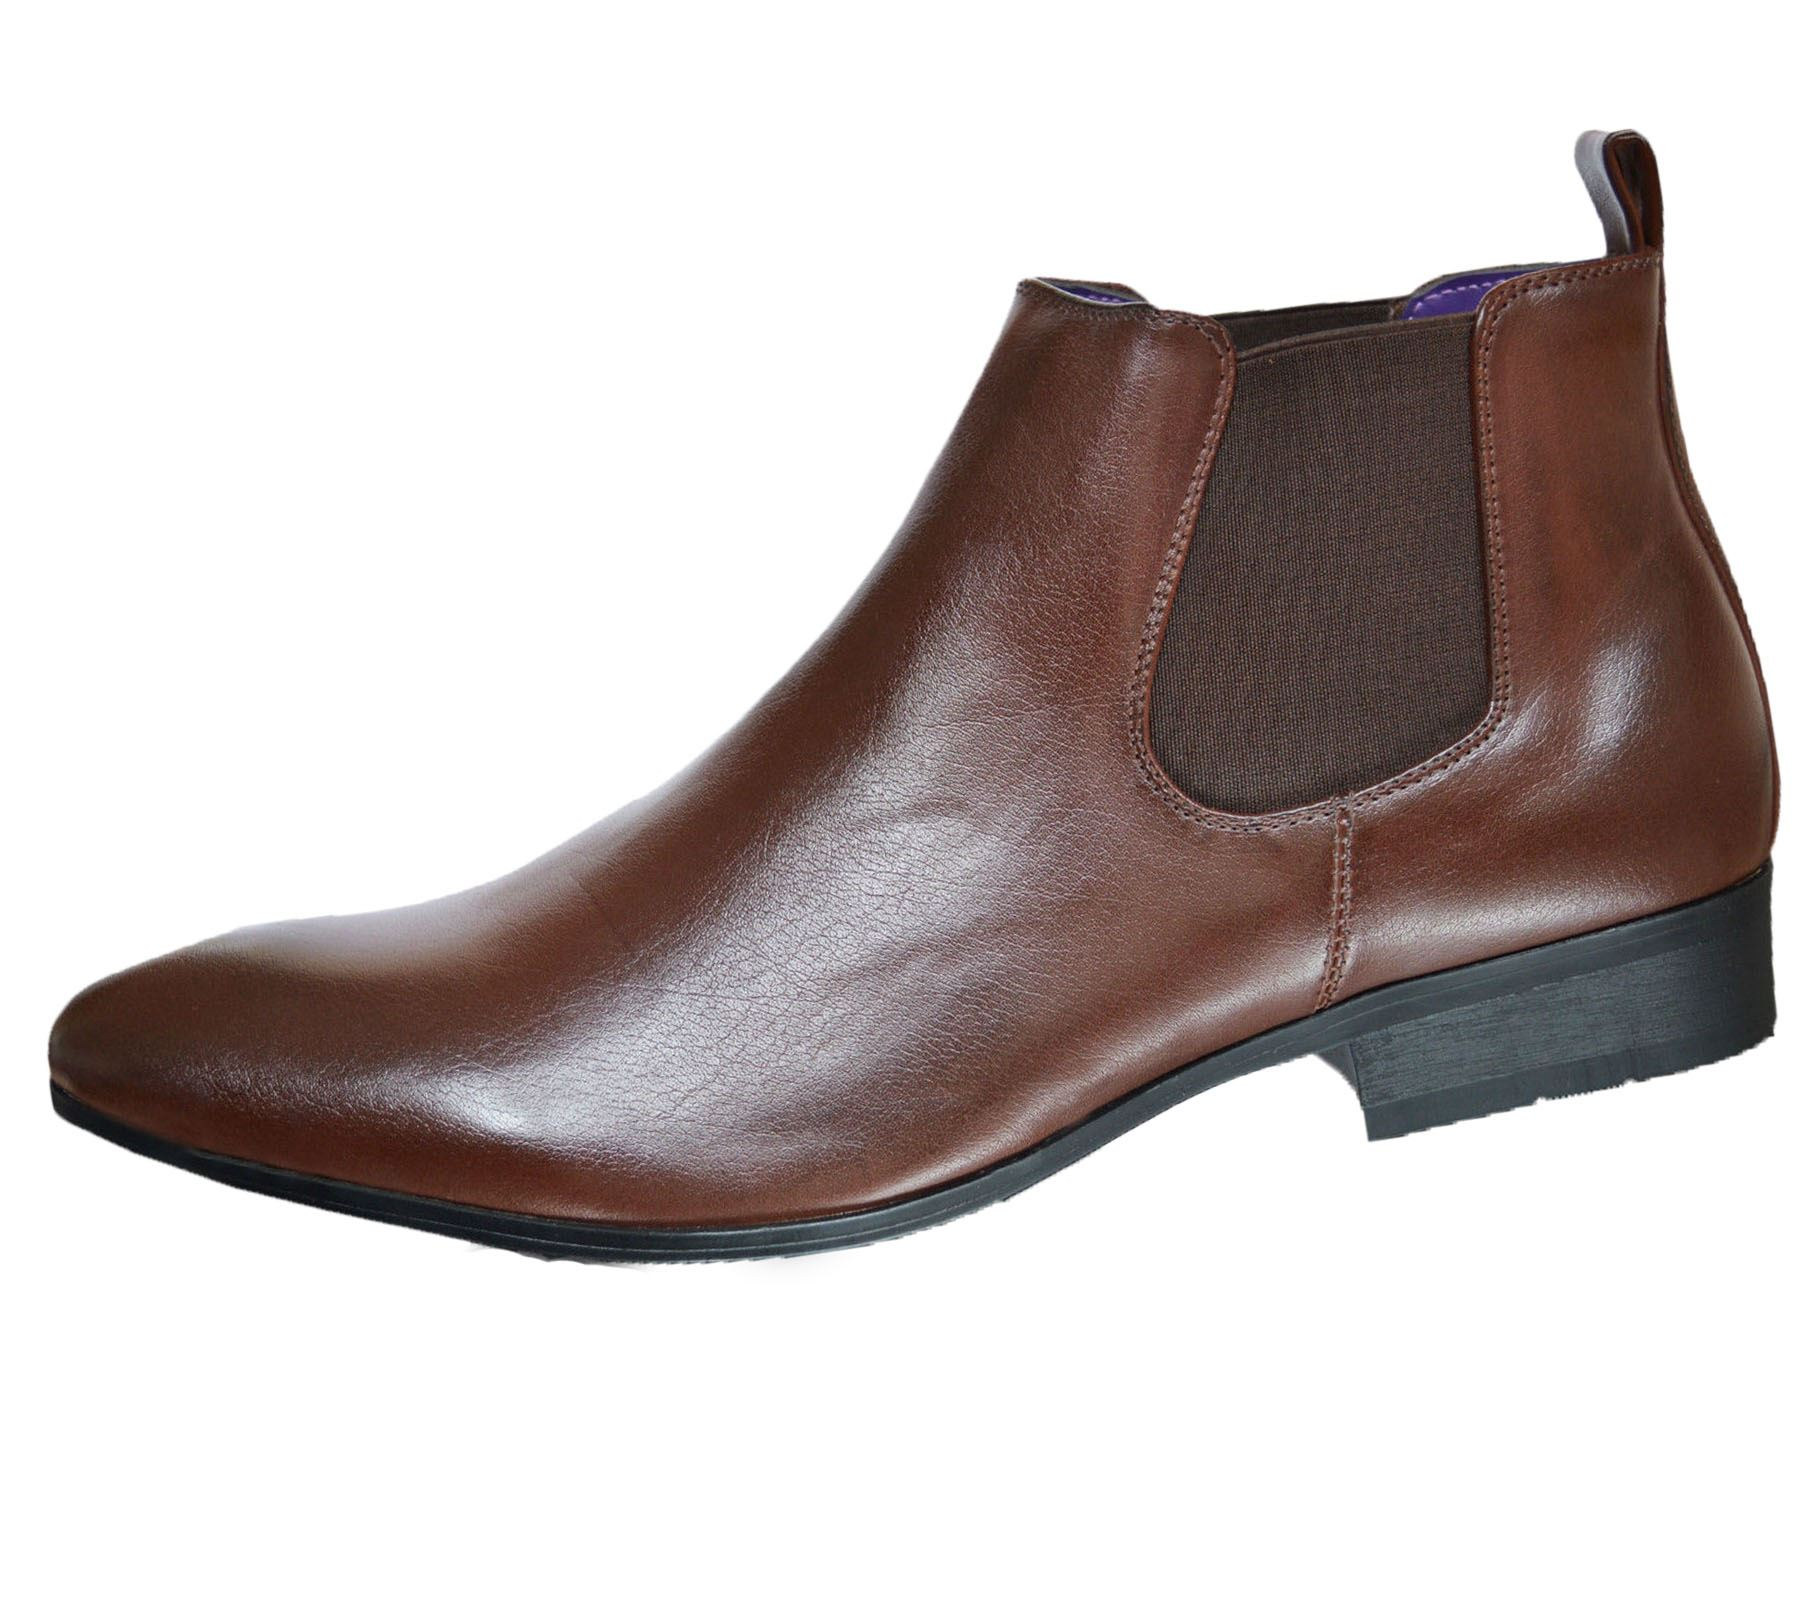 Mens-Chelsea-Boots-High-Top-Gusset-Synthetic-Leather-Shoes thumbnail 13